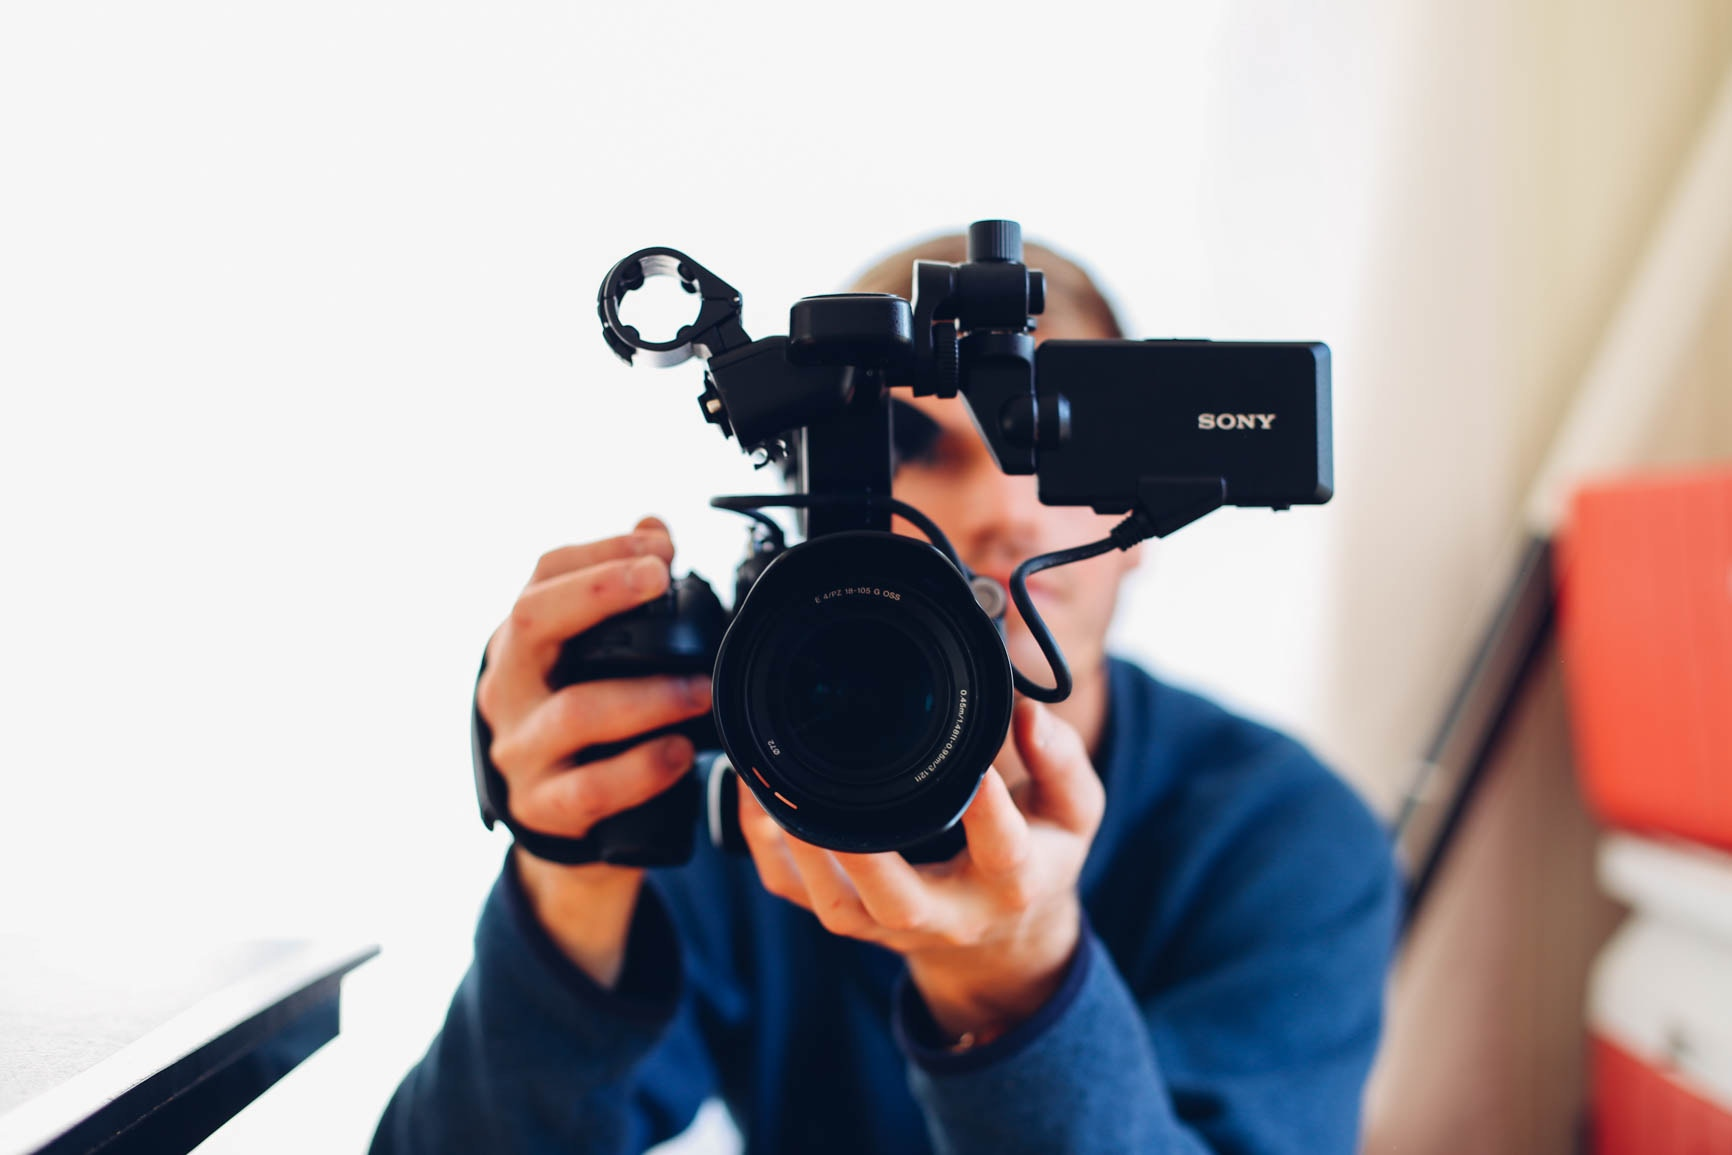 Video operator with a professional camera